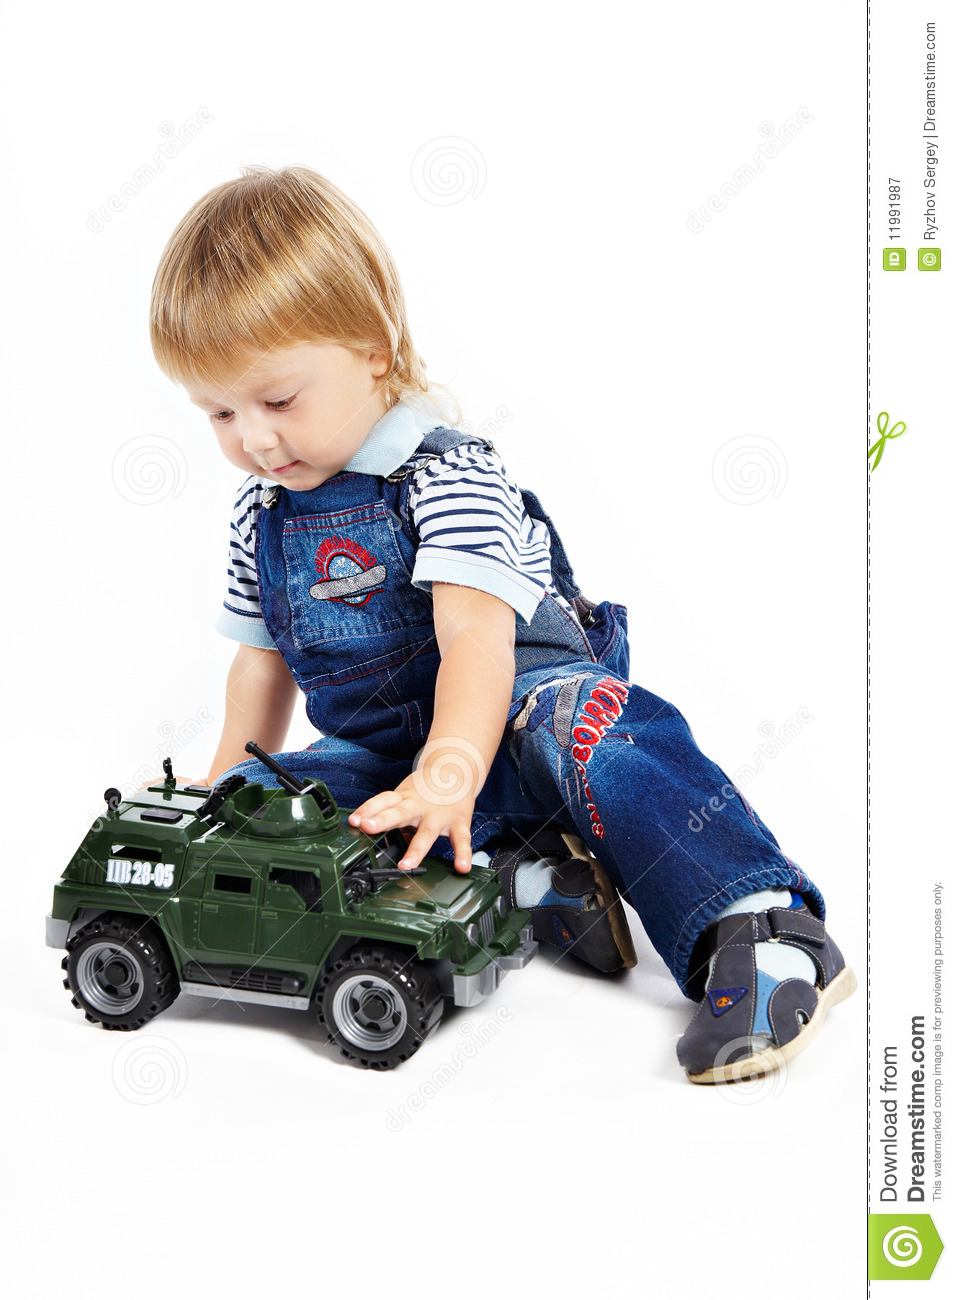 Military Vehicle Toys For Boys : The little boy with a toy military vehicle royalty free